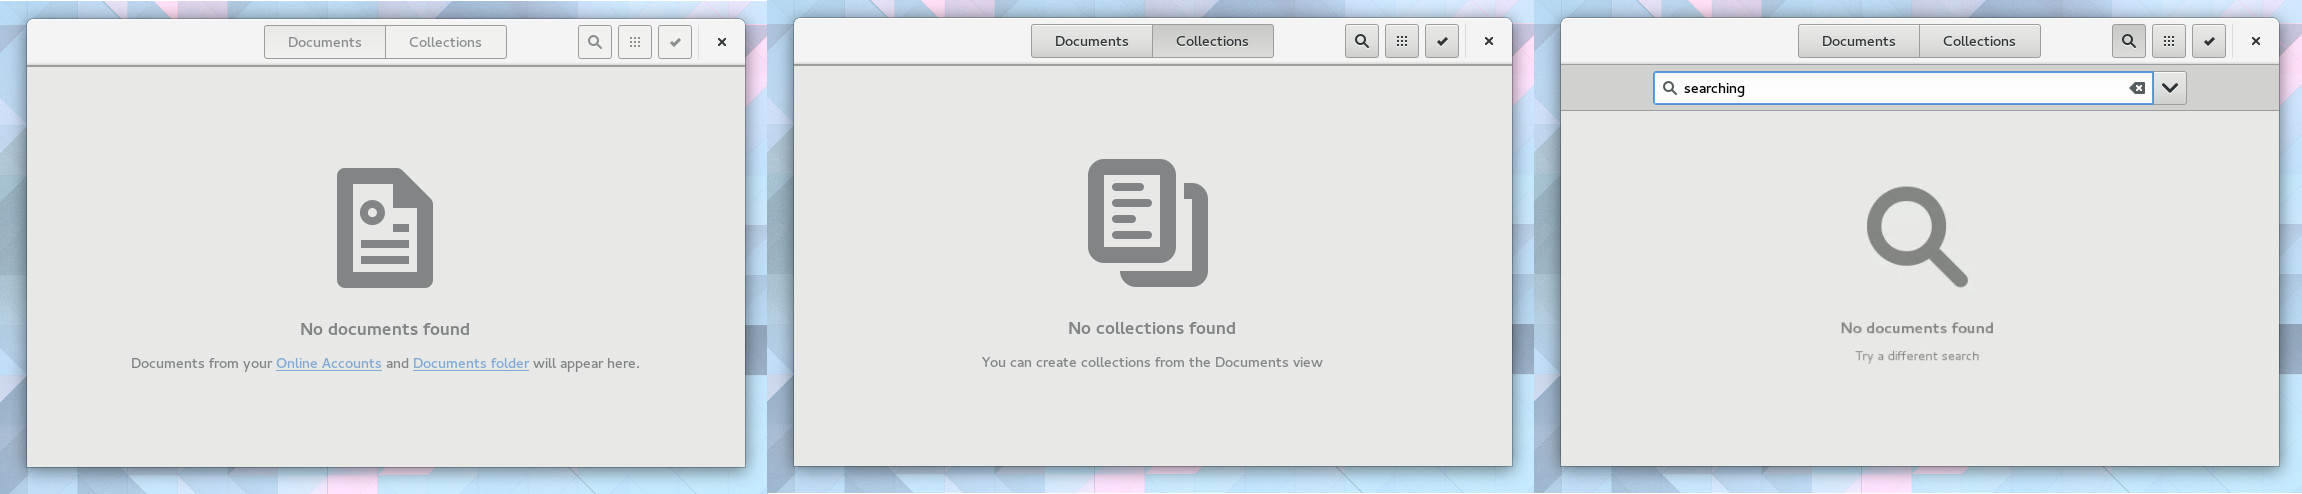 gnome-documents-empty-states